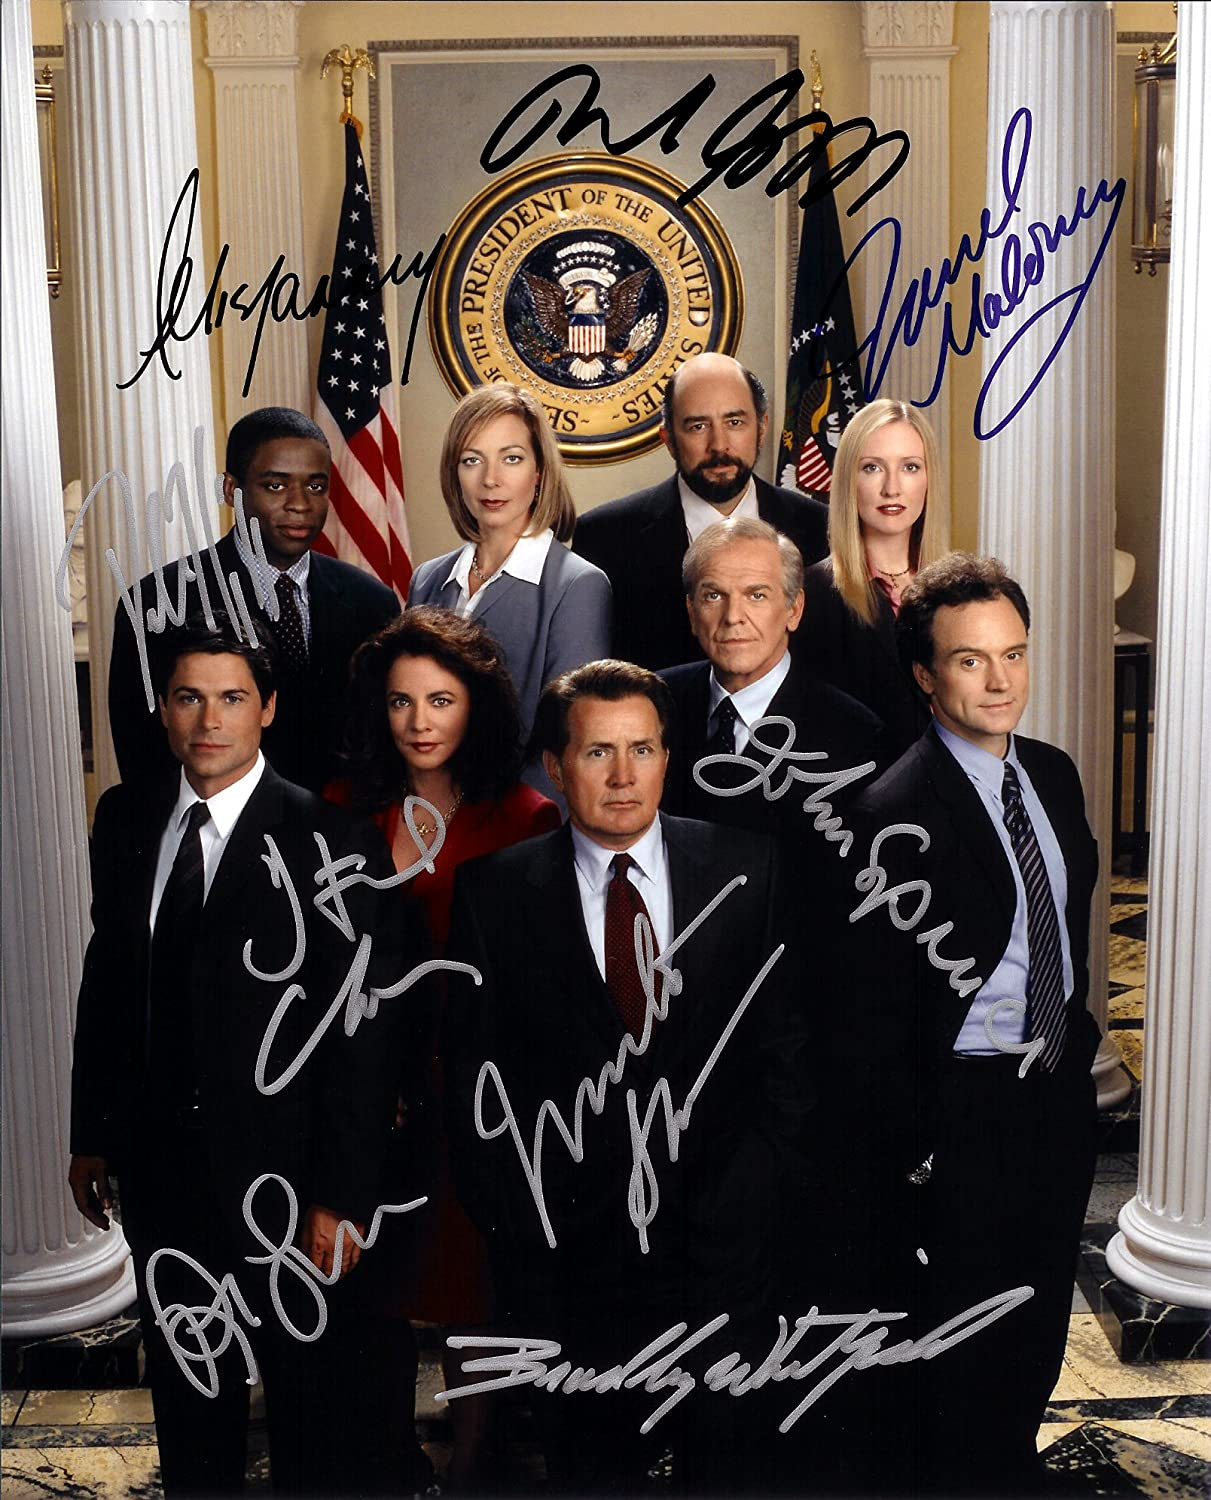 The West Wing TV Series Cast Signed Autographed 8 X 10 RP Photo - Mint Condition got7 got 7 mark autographed signed photo flight log arrival 6 inches new korean freeshipping 03 2017